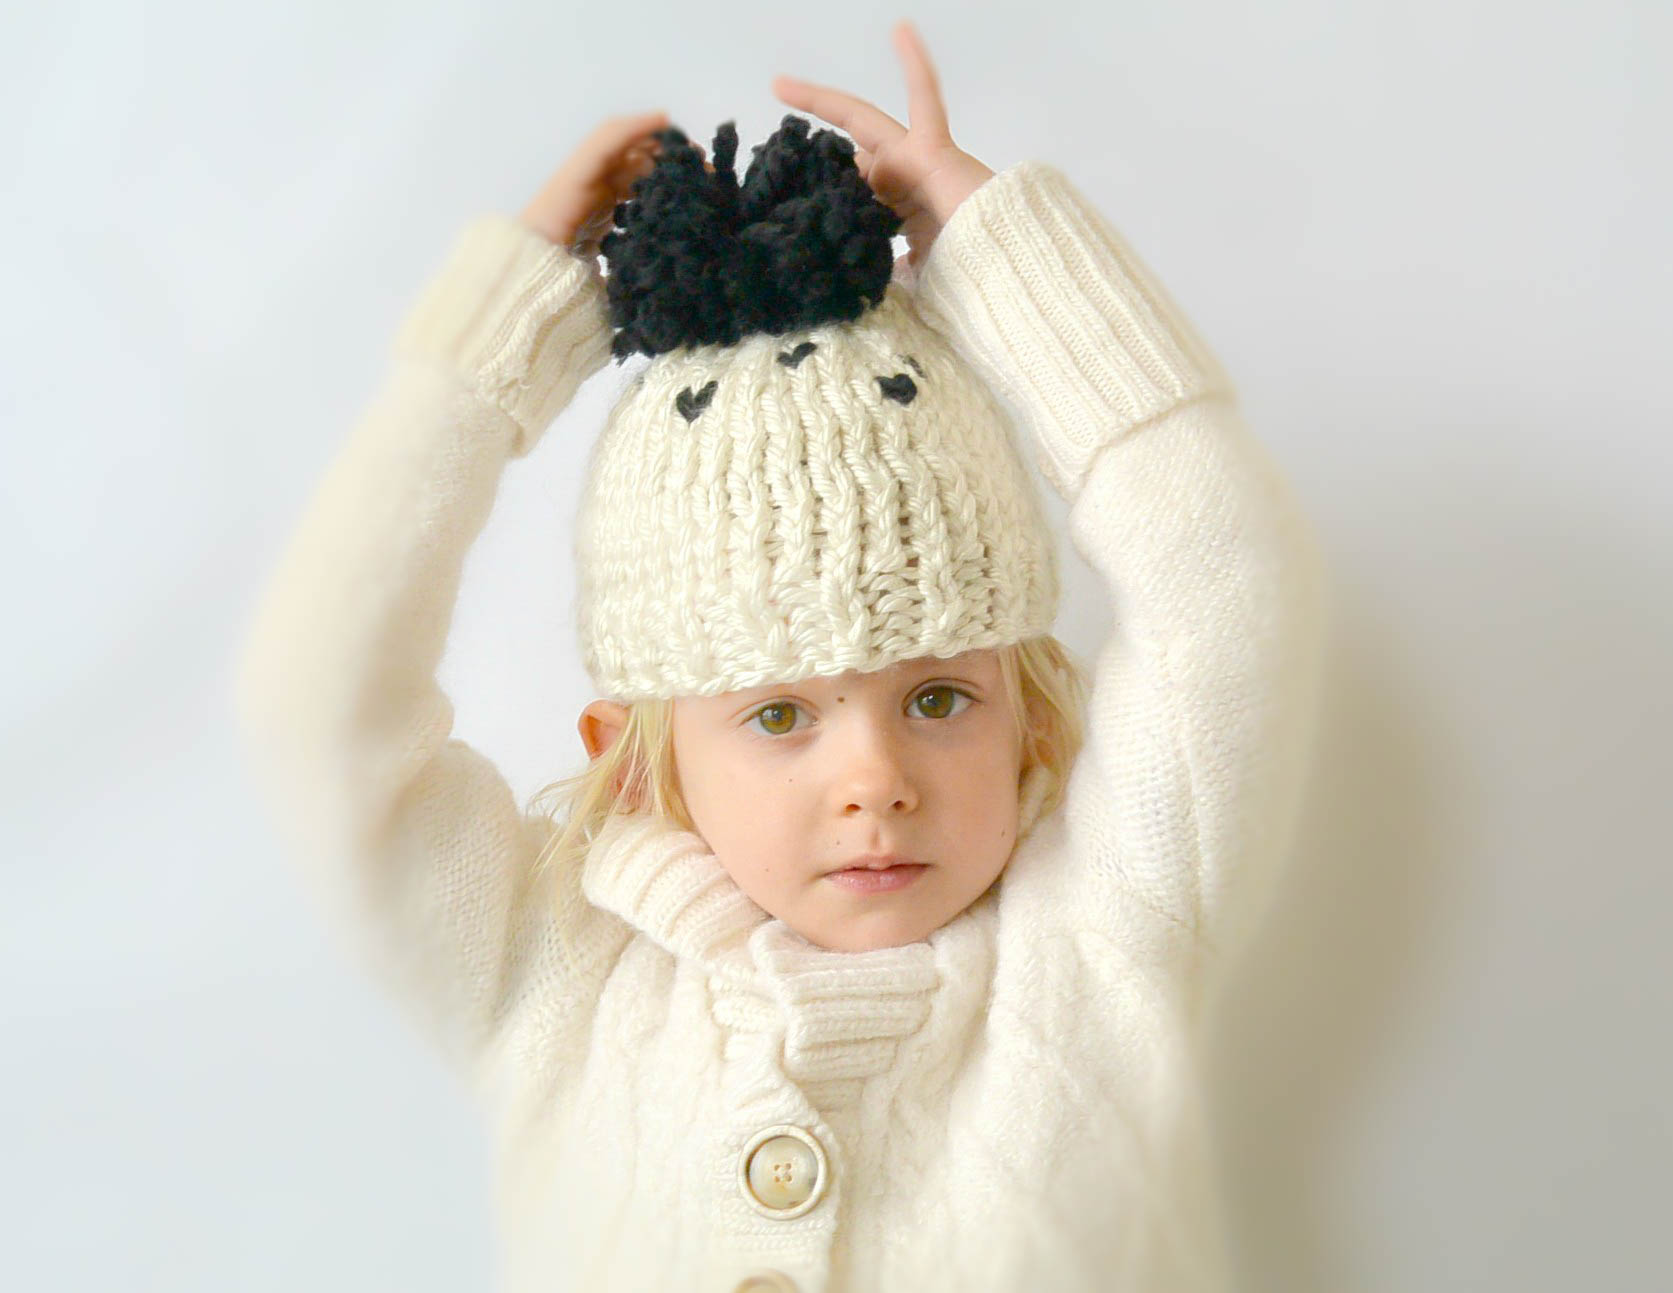 Knitting Patterns For Toddler Hats : Everyday Chunky Knit Toddler Hat Pattern   Mama In A Stitch